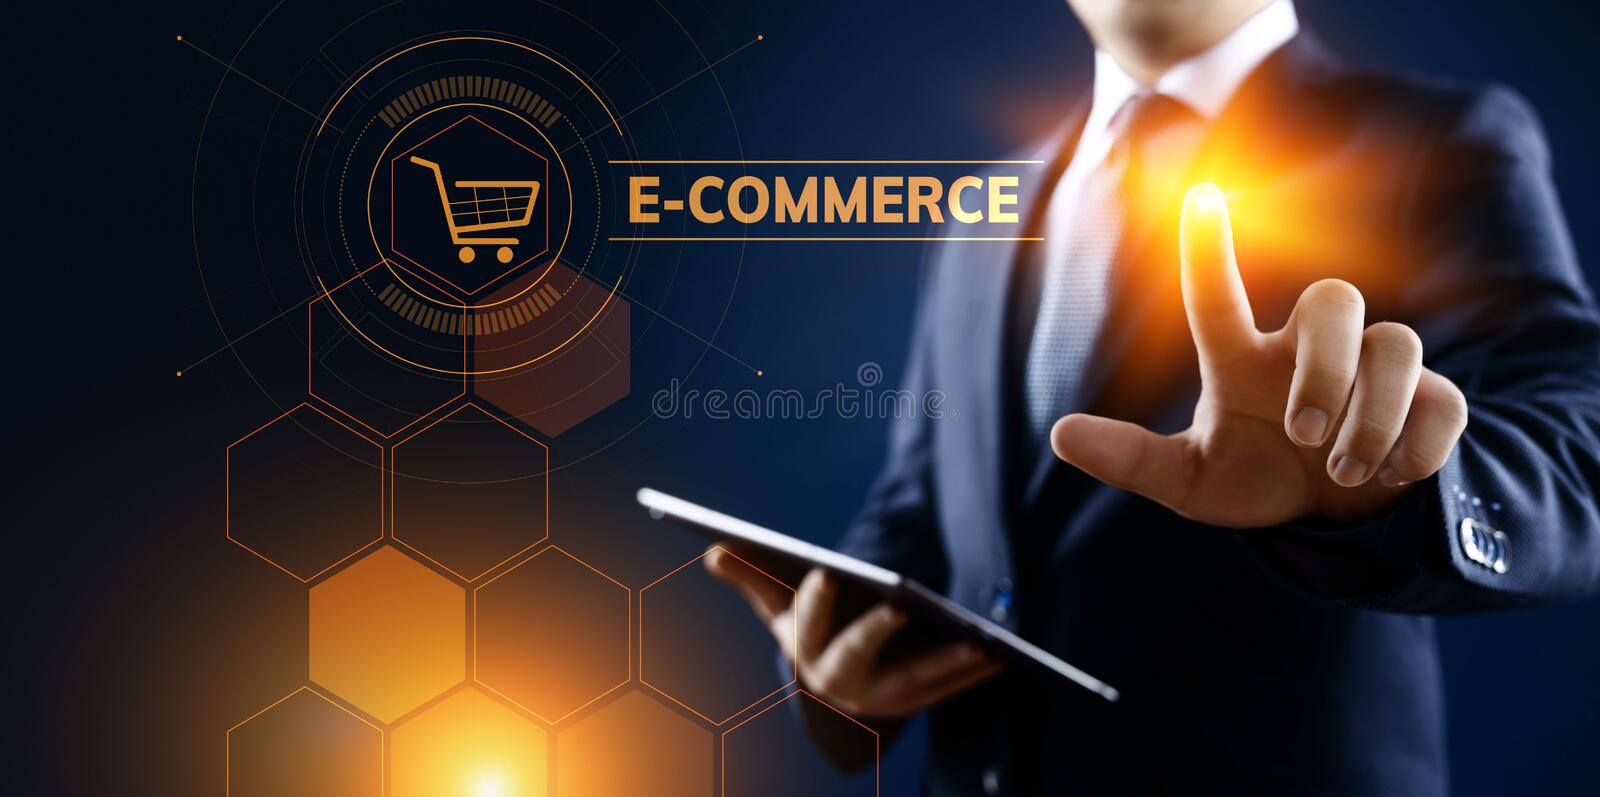 E-commerce Online Shopping Digital marketing and sales business technology concept. stock photo